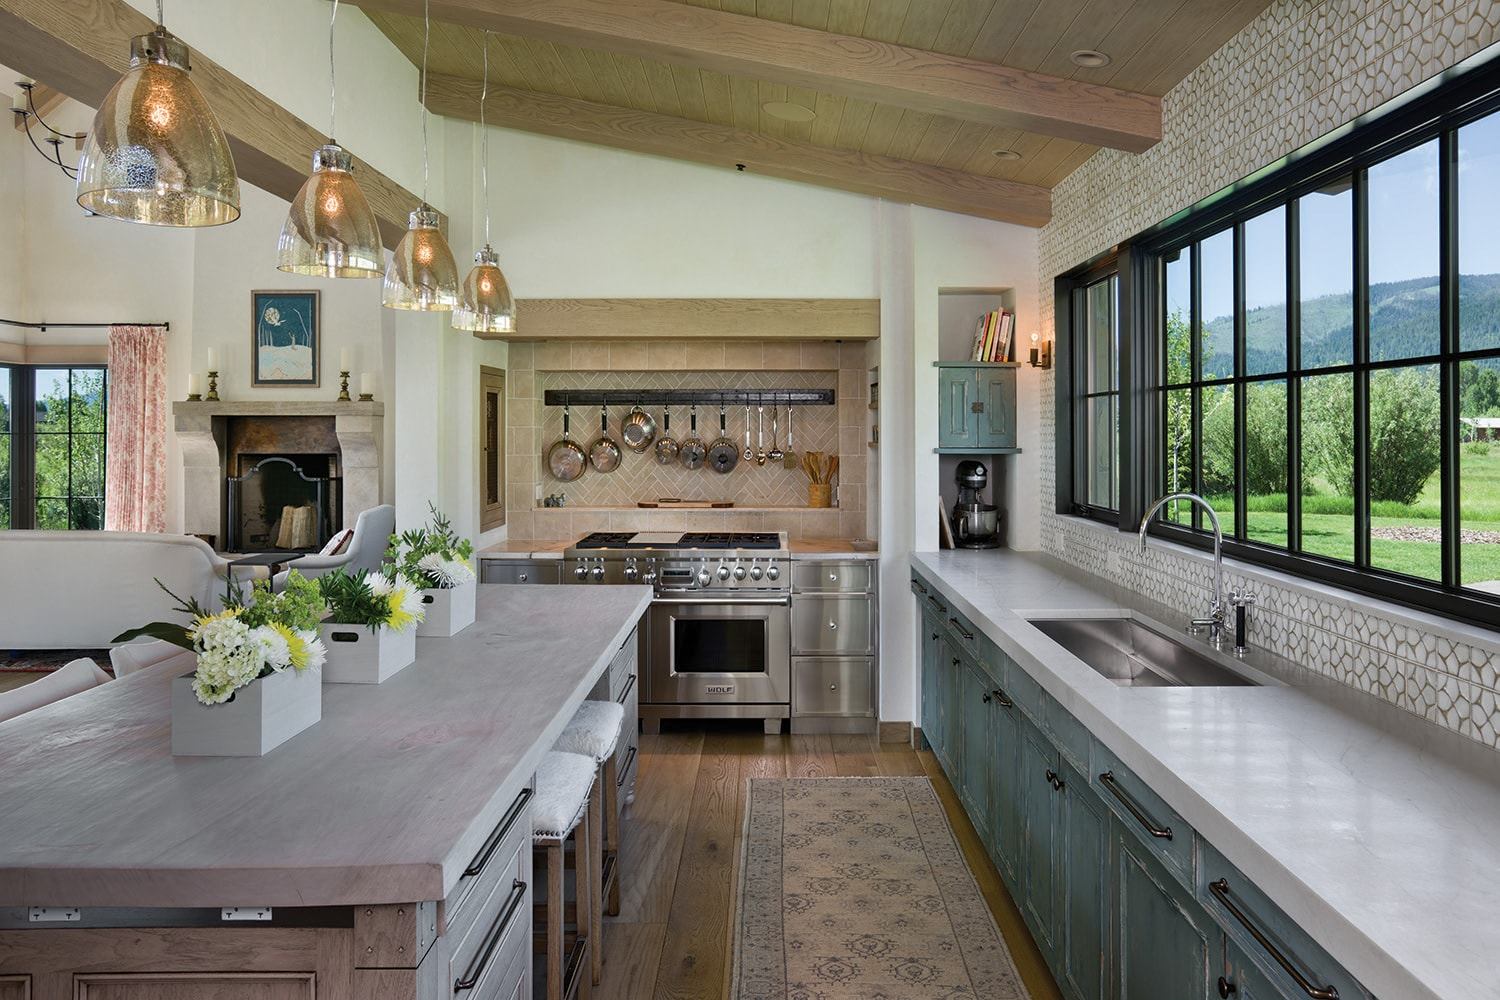 The kitchen features design and cabinetry by de Giulio Design.